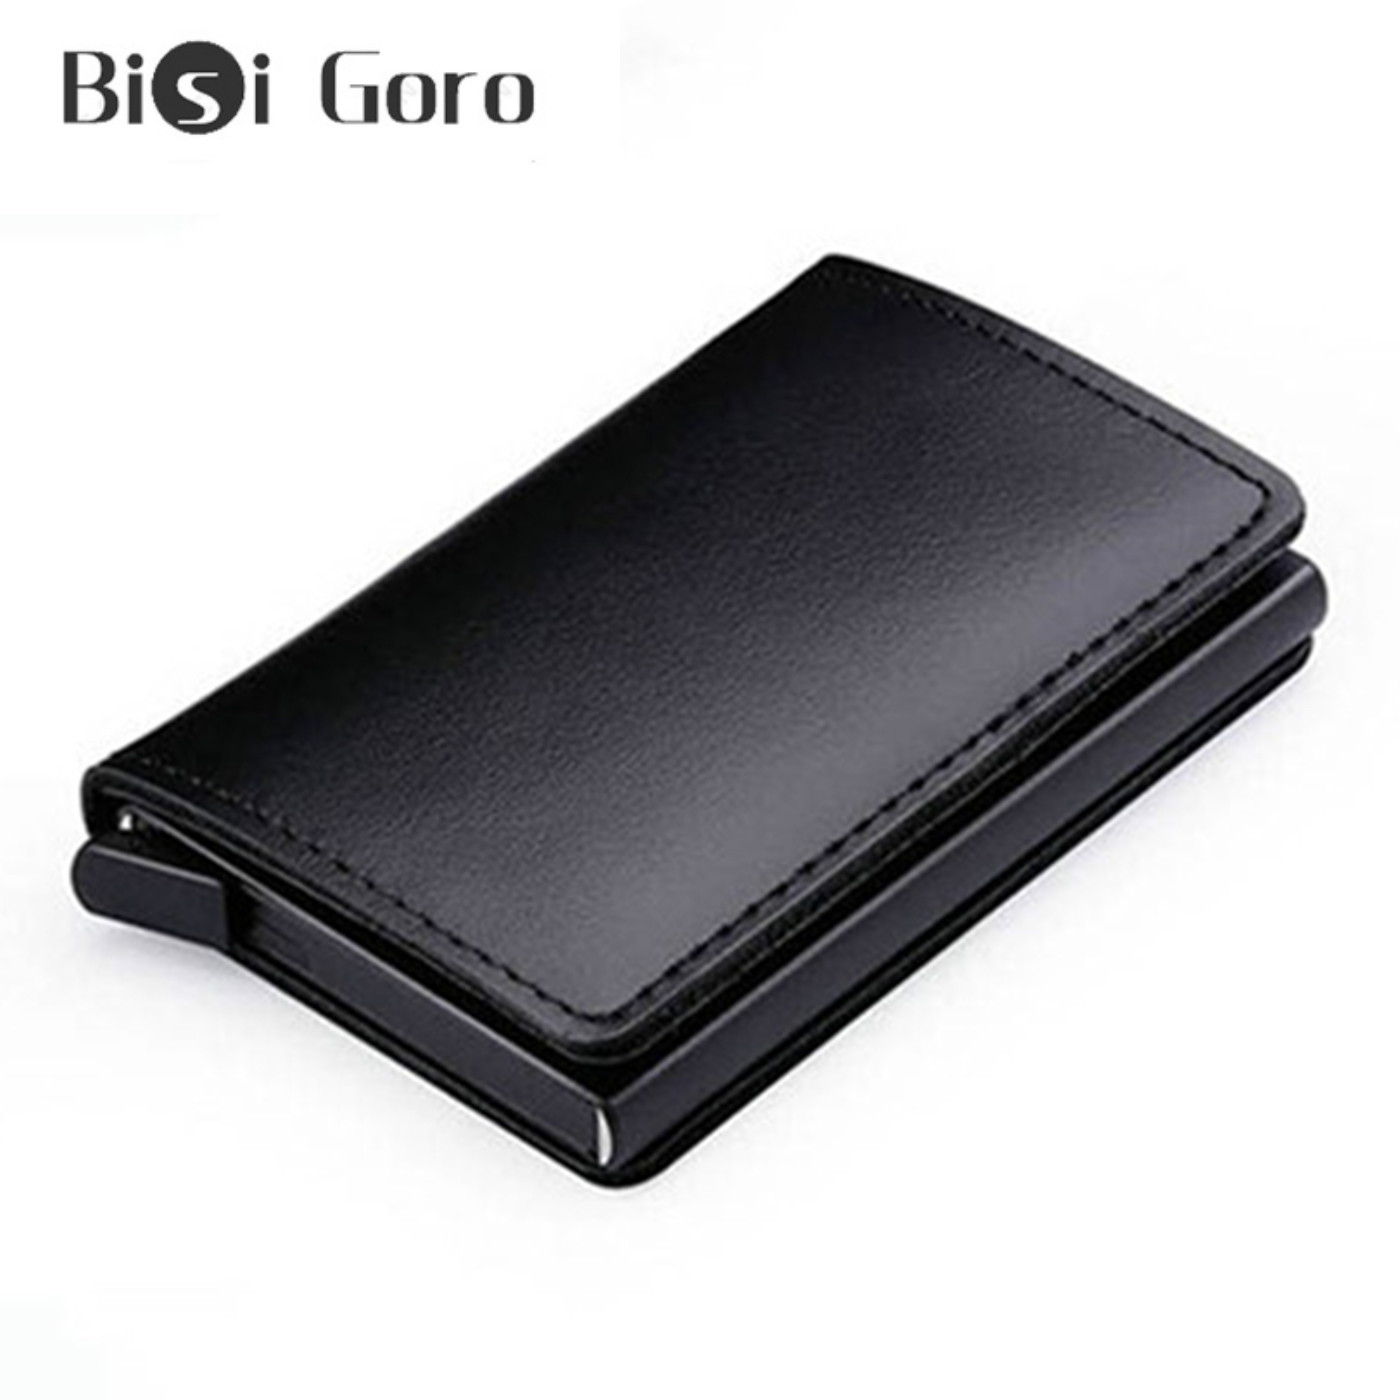 BISI GORO New Genuine Leather Wallet Slim Business Card Holder RFID Blocking Mini Purse Vintage Anti-theft Mini Thin Card Wallet